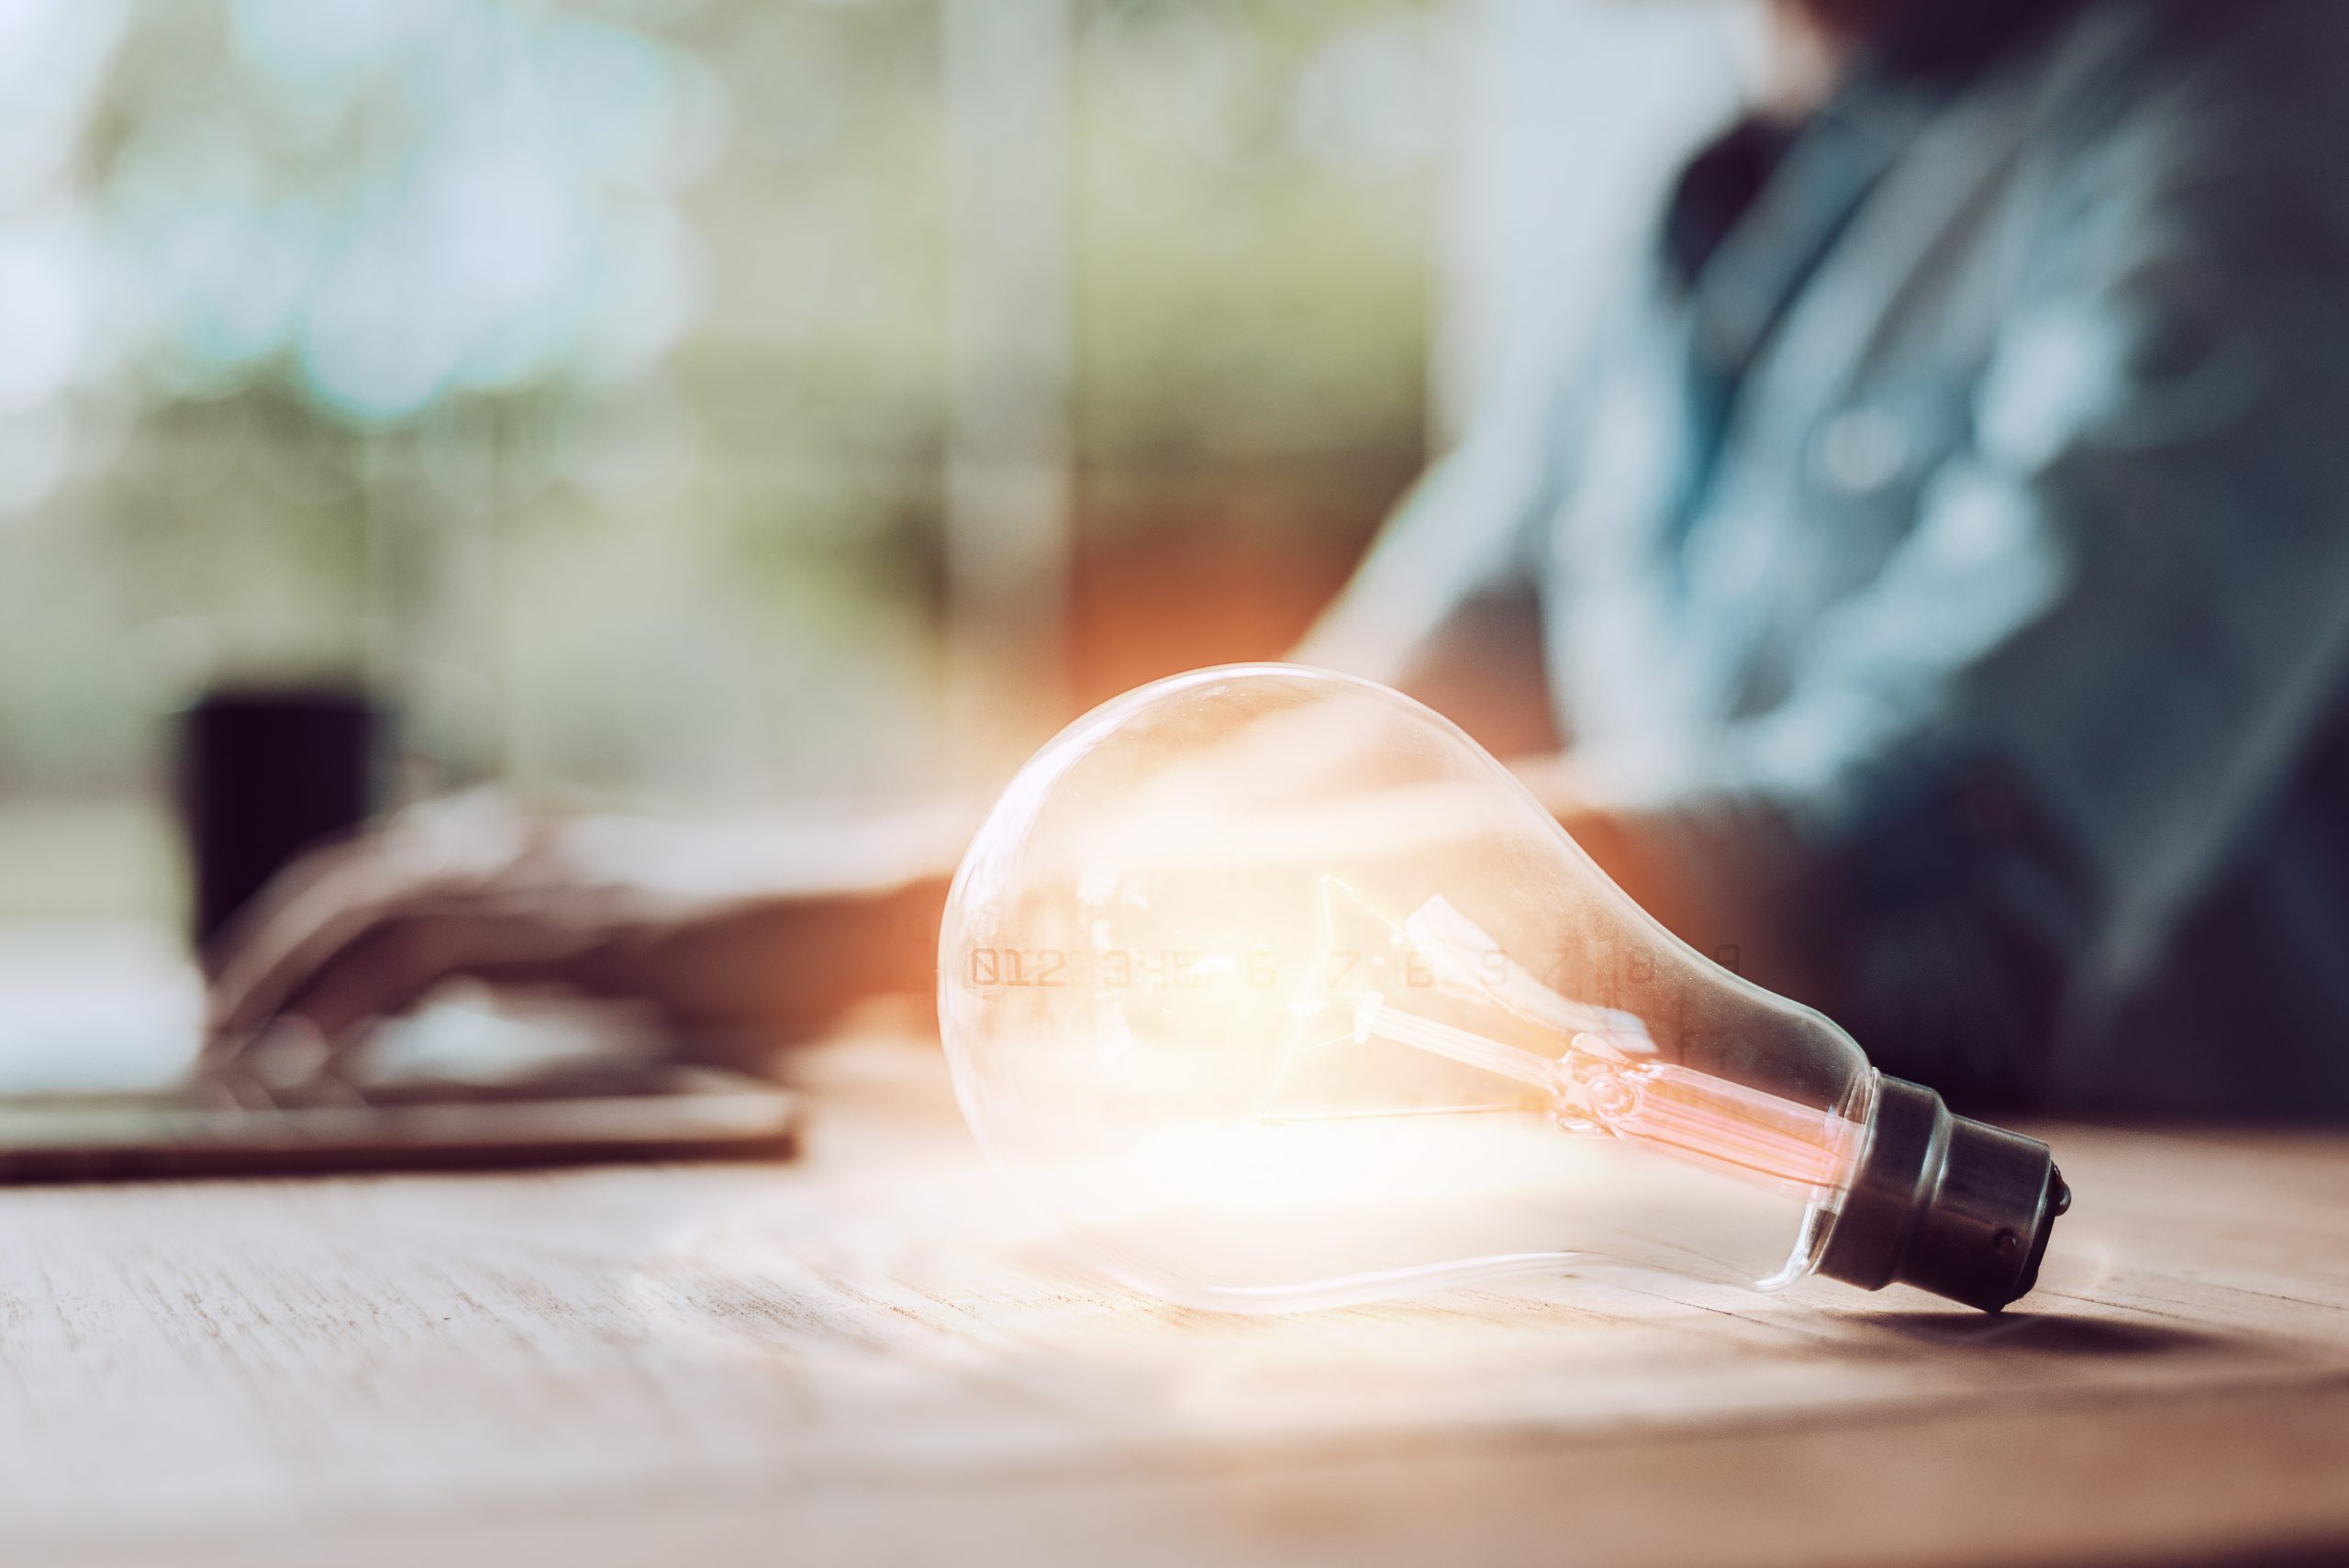 lightbulb on table in front on man on computer